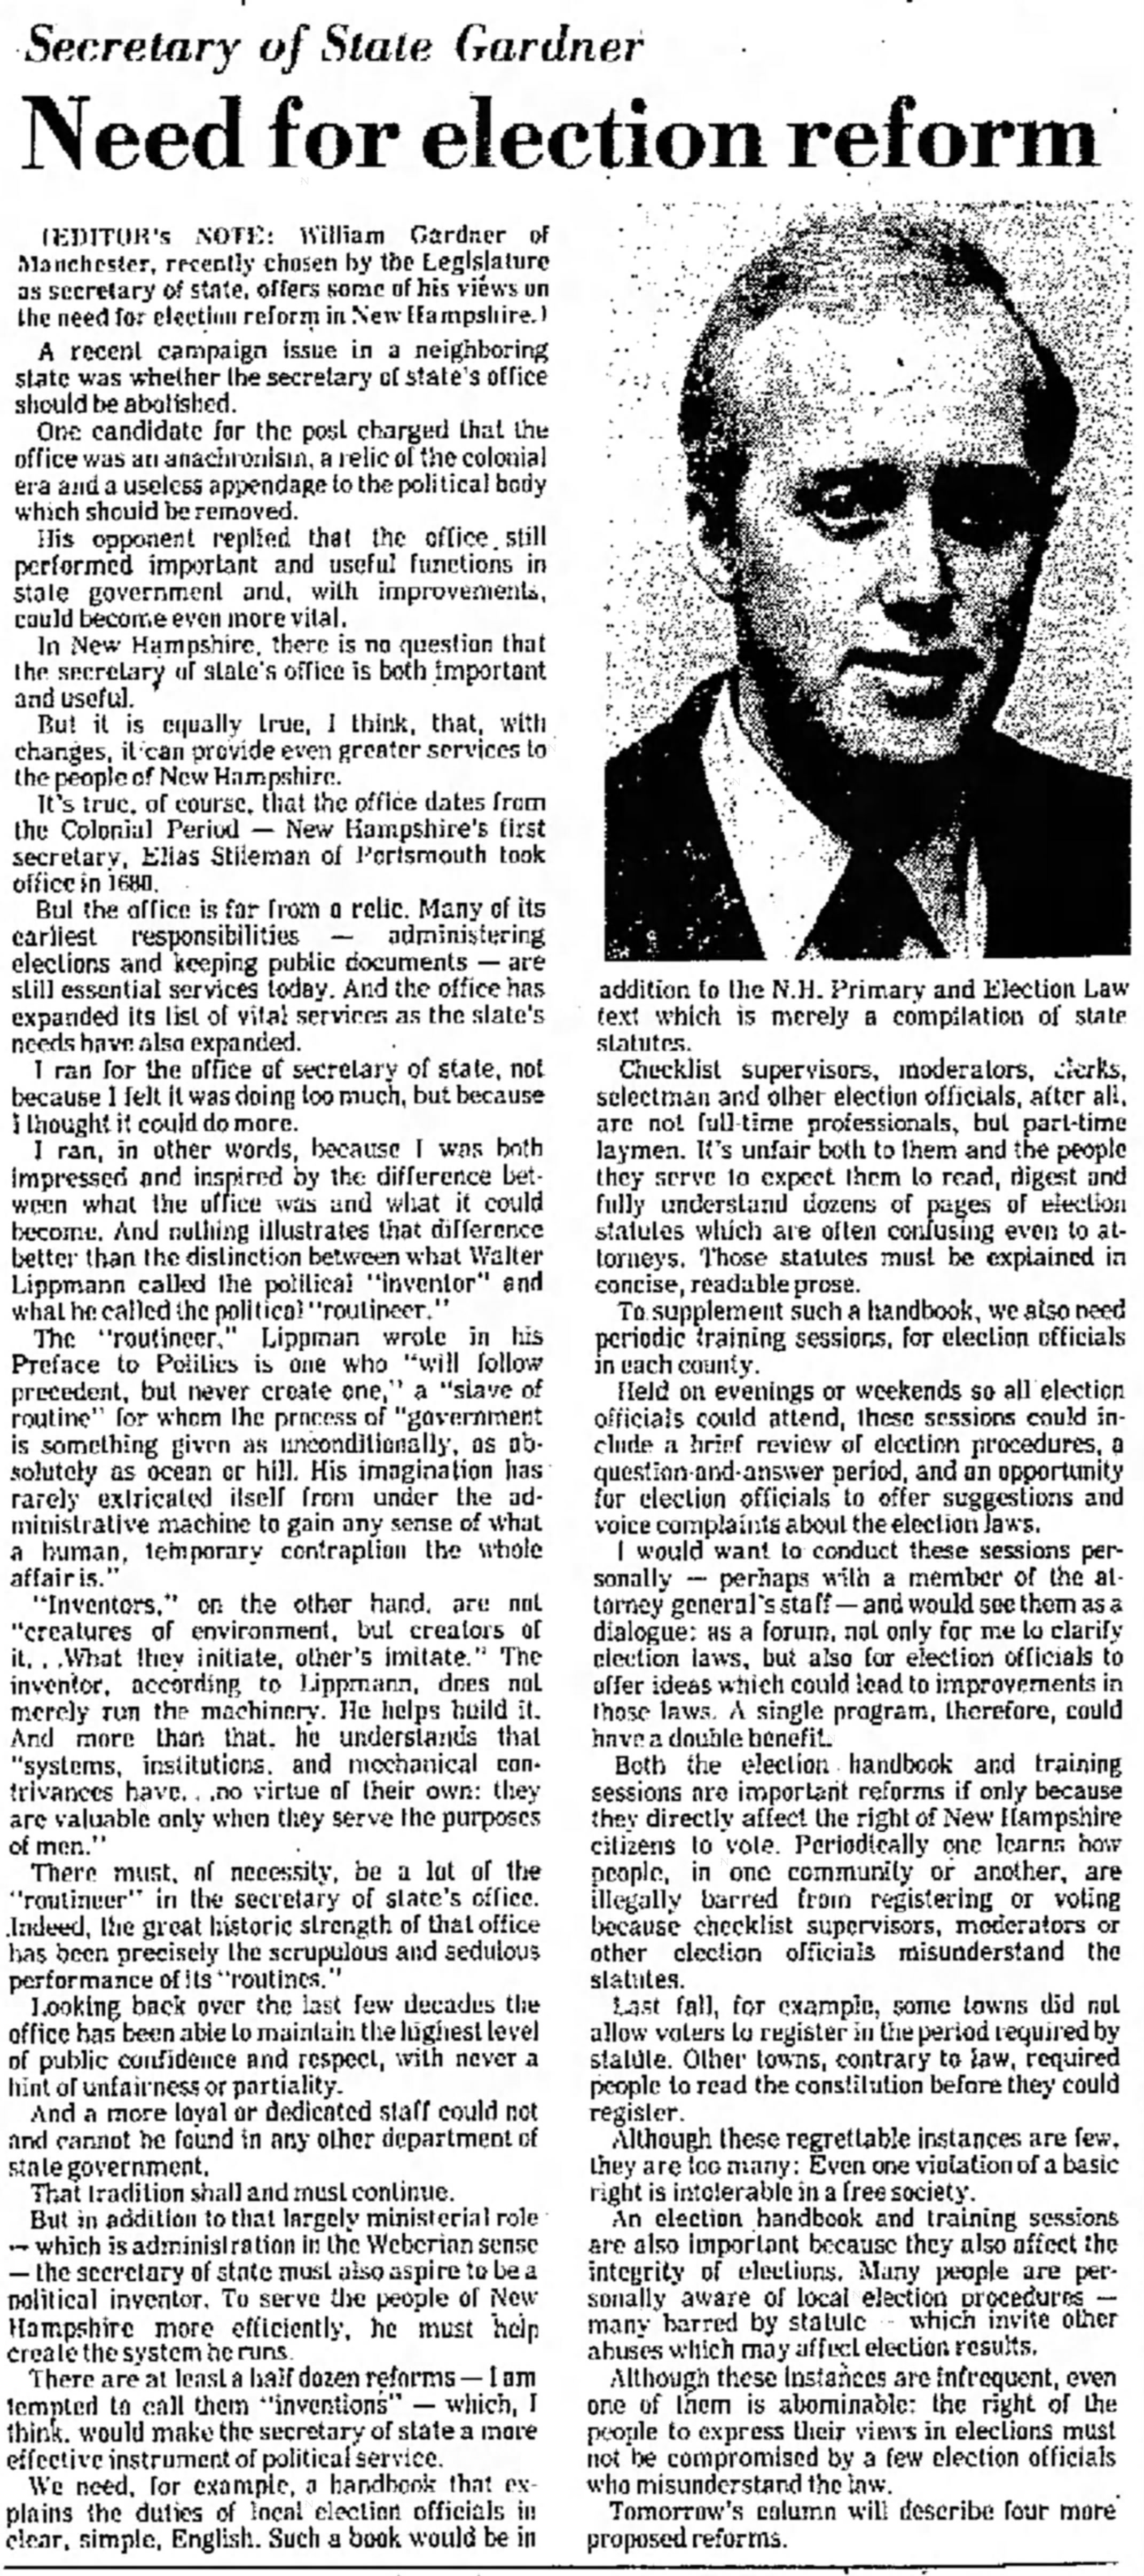 When Gardner started out as Secretary of State, he preached the need for expanded voter access and vowed to bring overdue reforms to the office. (He outlined some of those reforms in this January 1977 column in The Portsmouth Herald.)